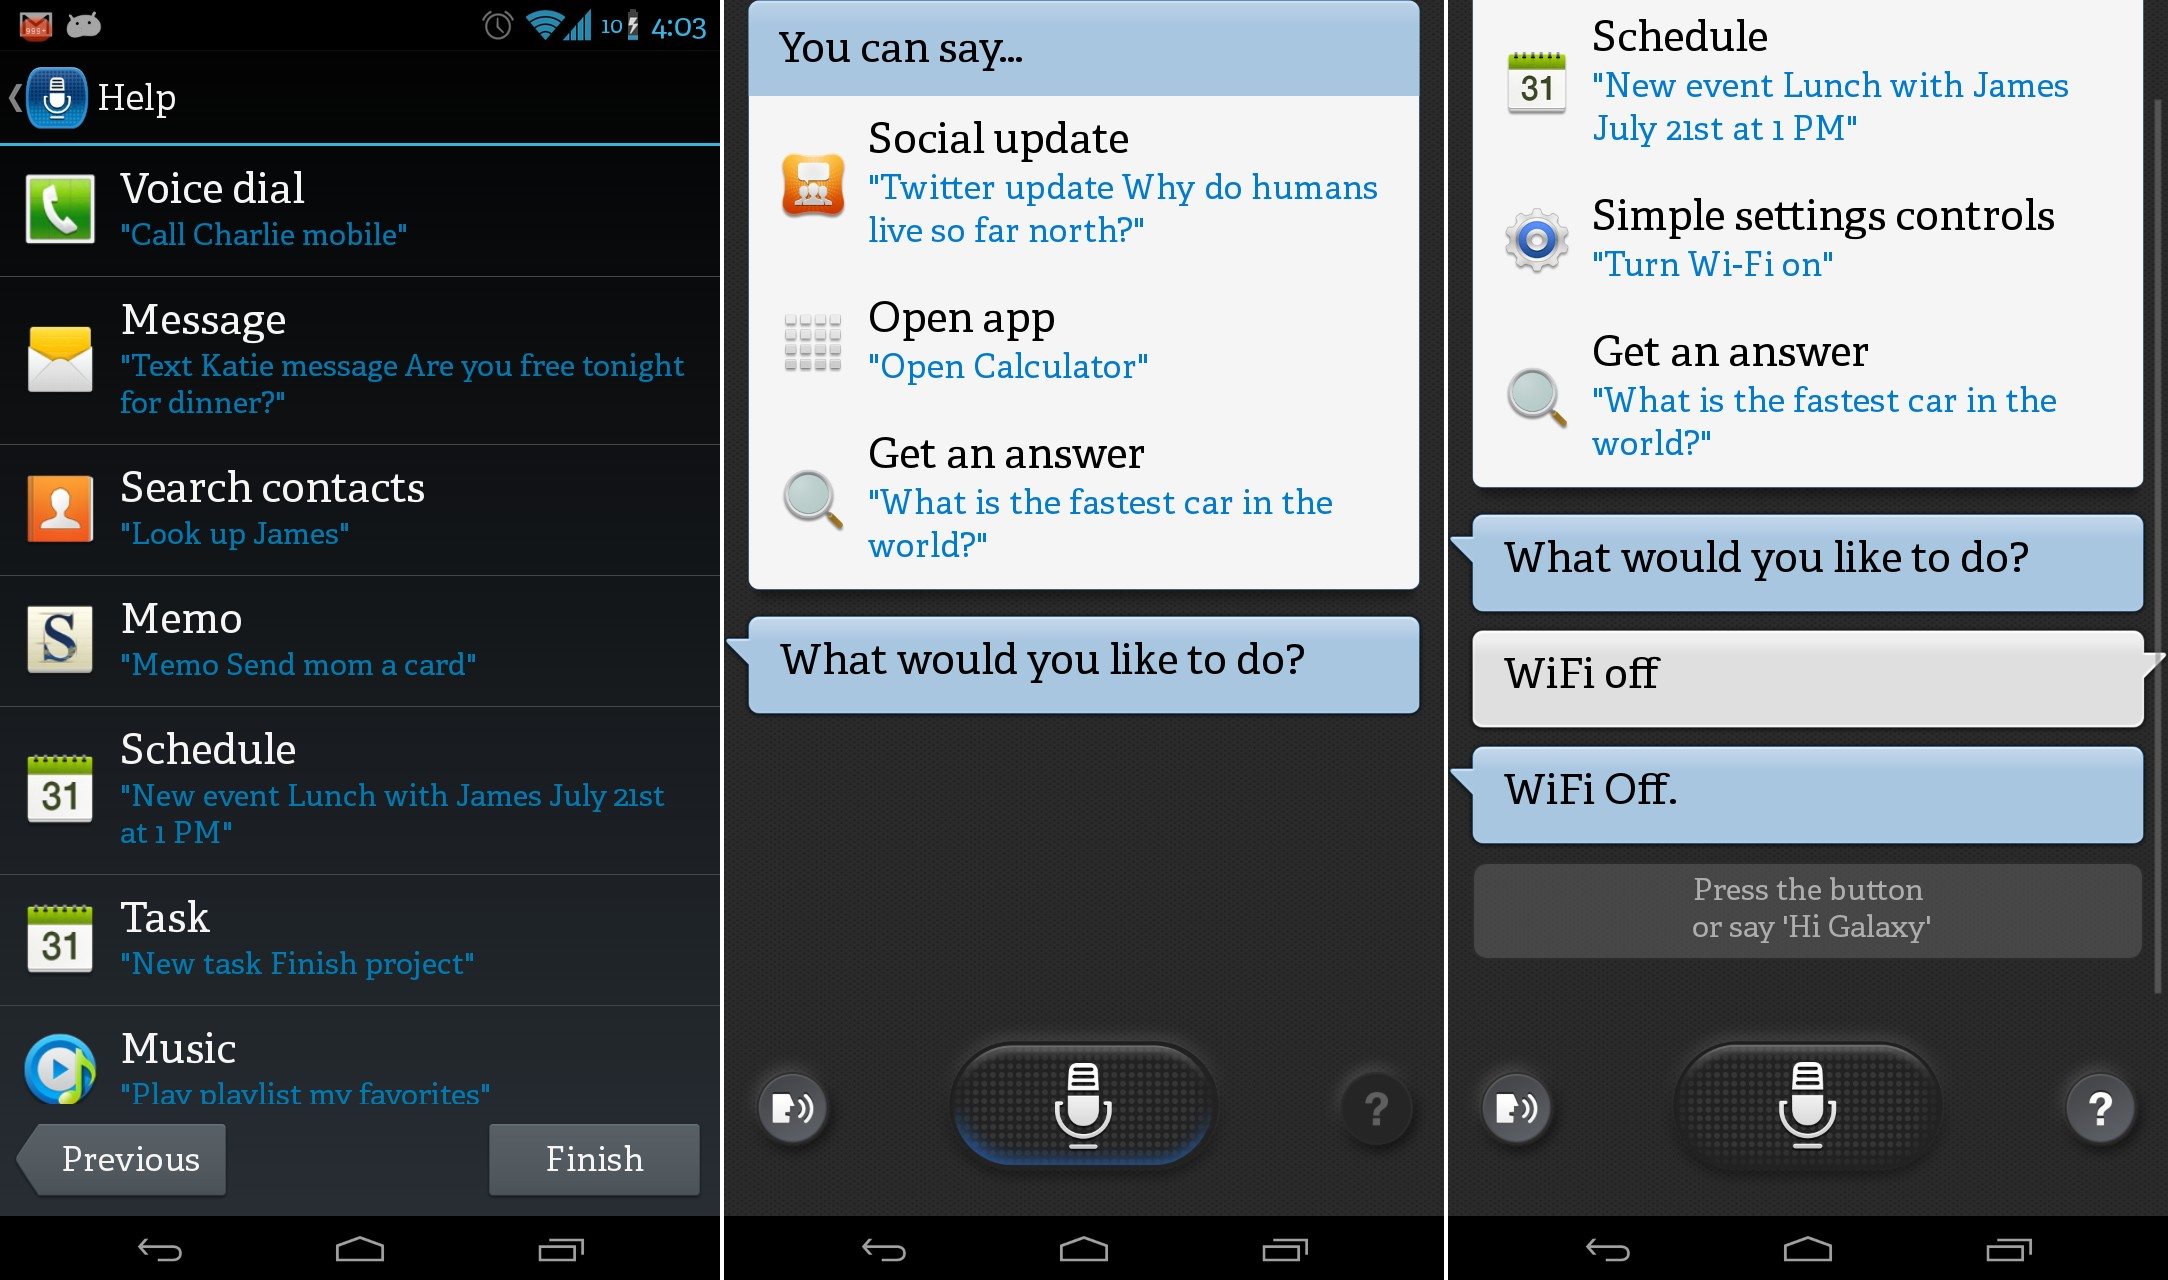 Set up voicemail on galaxy s4 apps directories